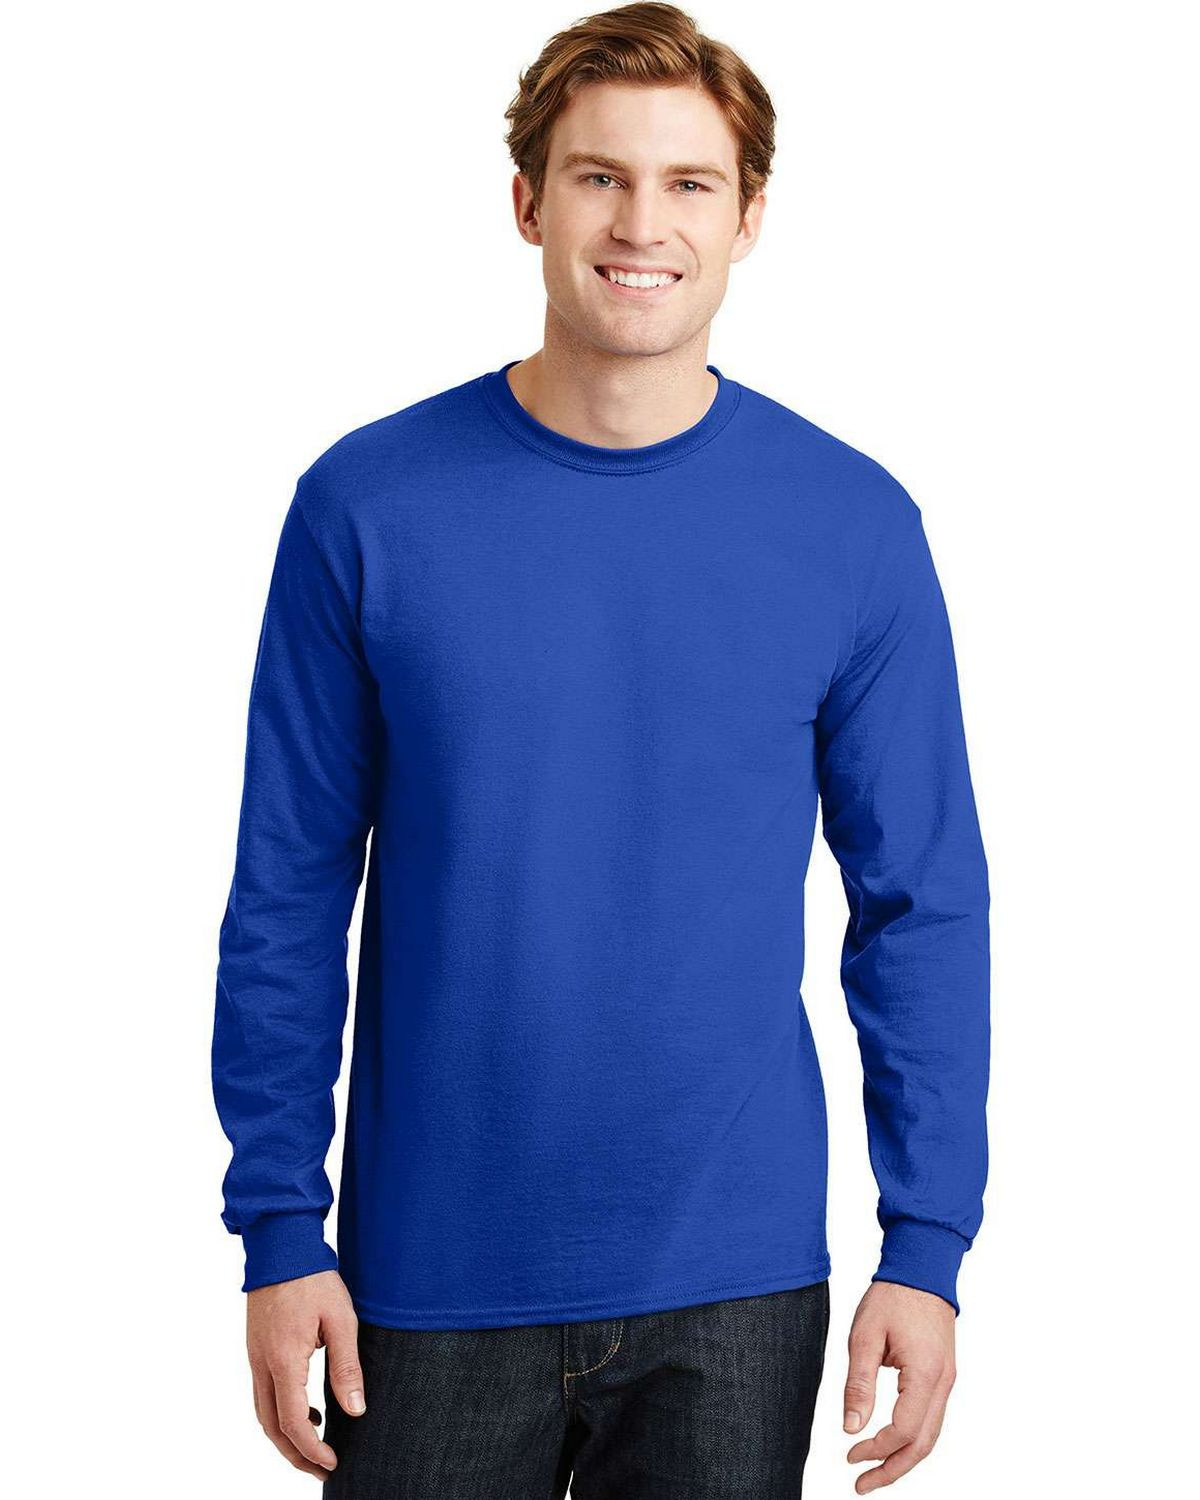 Gildan 8400 DryBlend Long Sleeve T Shirt - Royal - L 8400